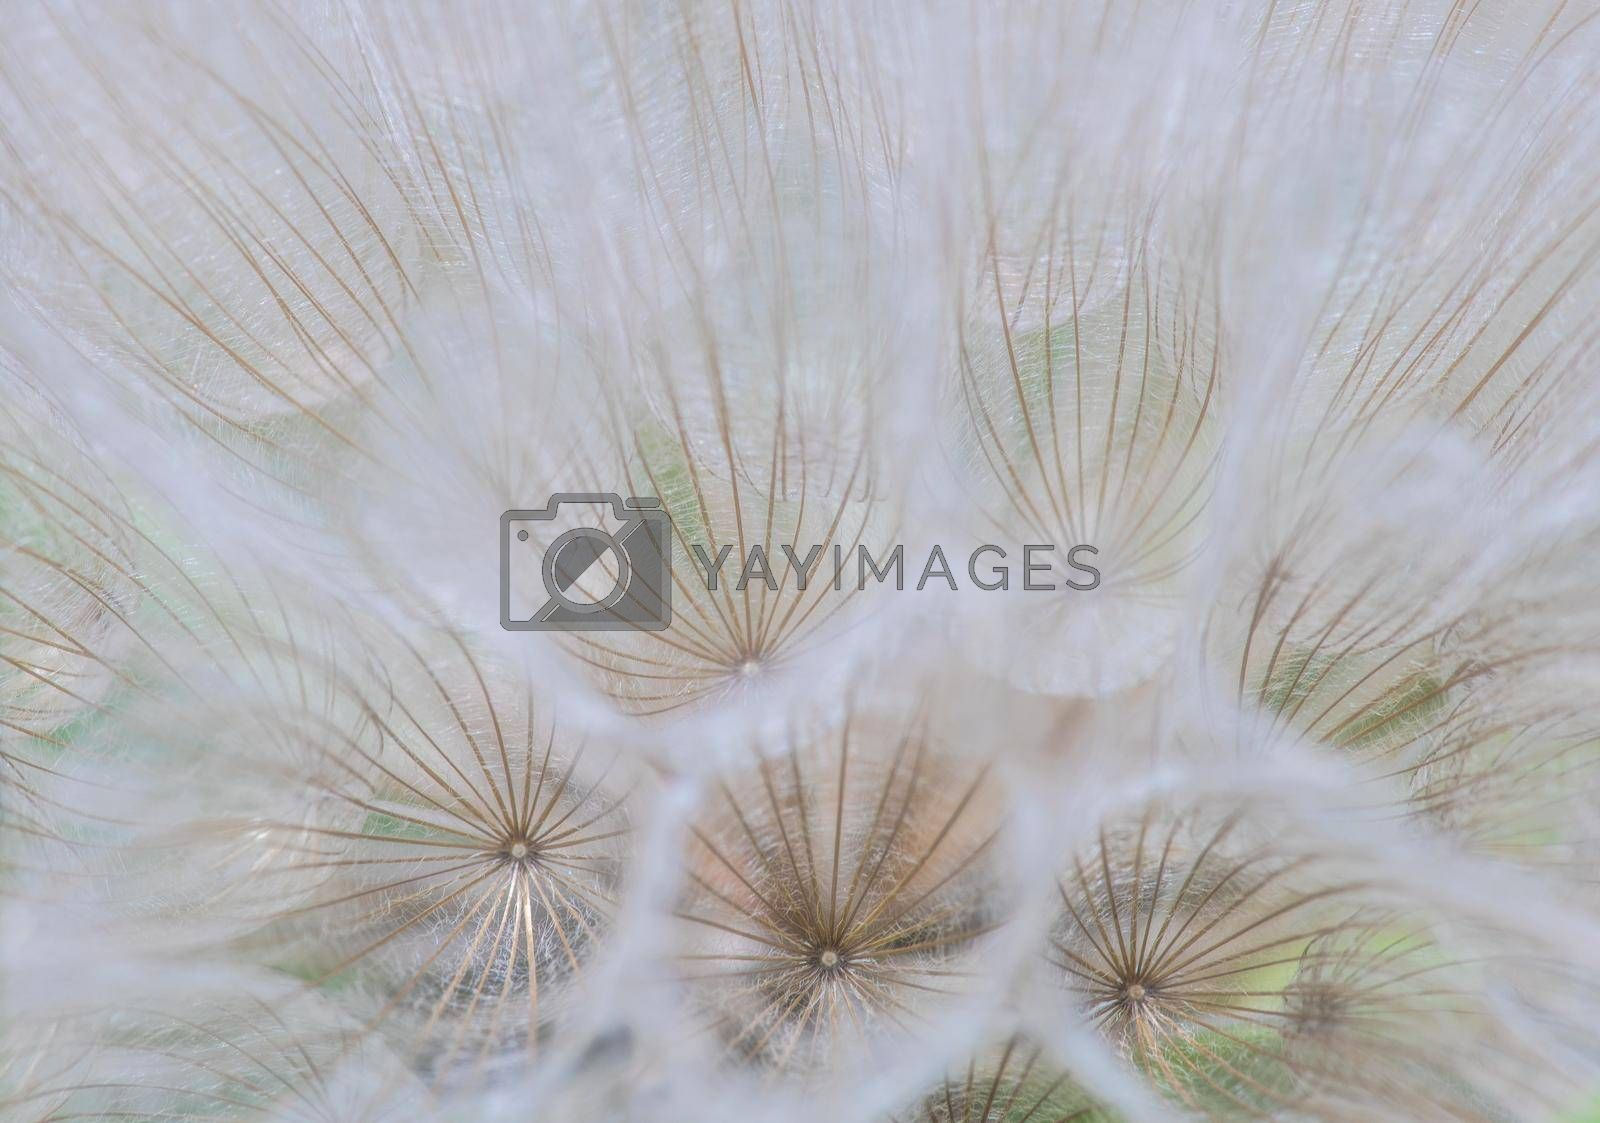 Royalty free image of Summer background with dandelion by Elet